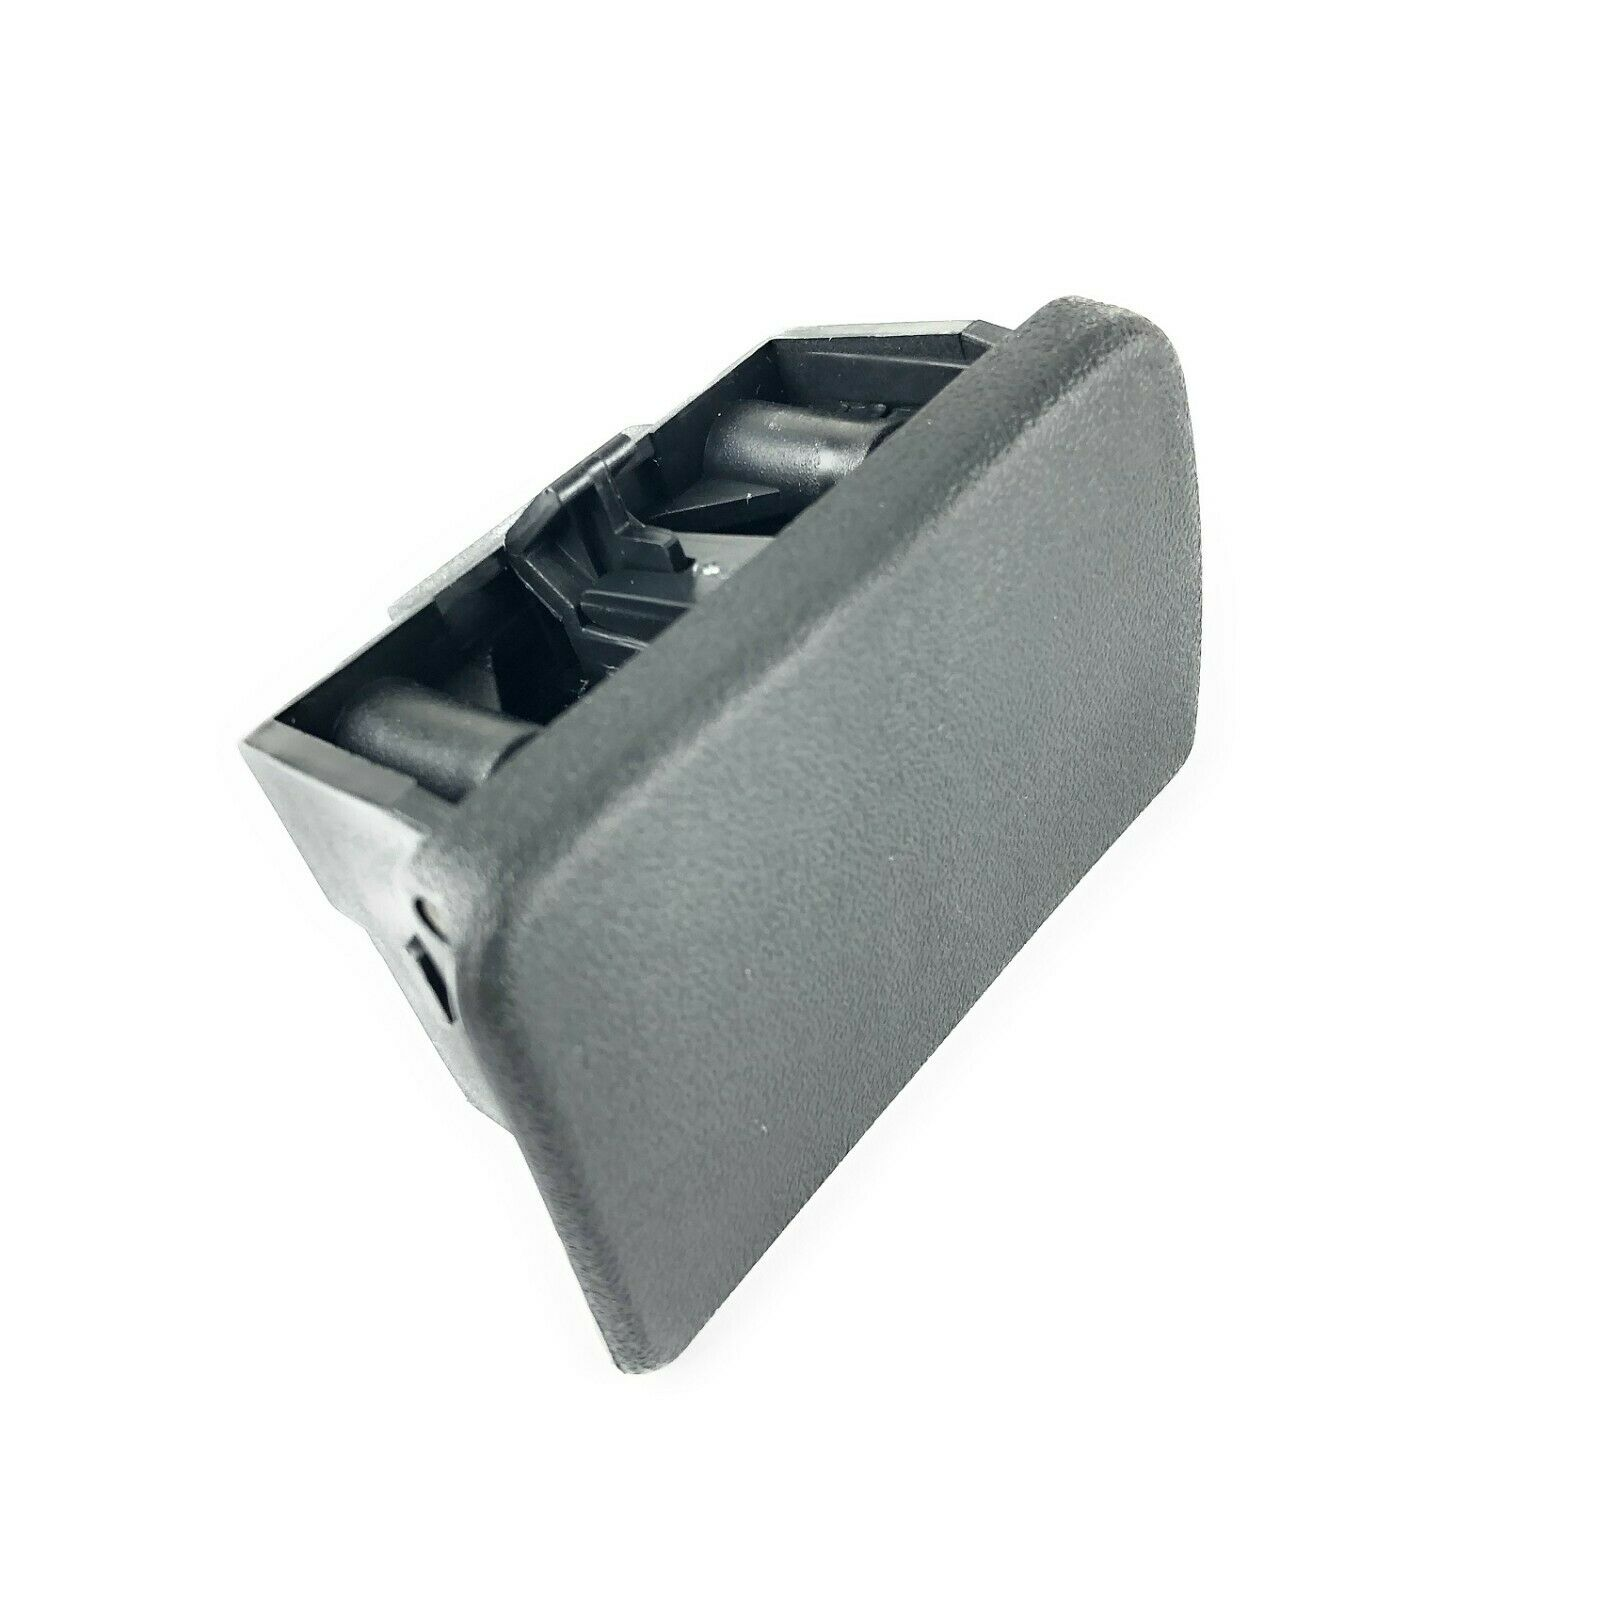 Land Rover Freelander Glove Compartment / Fuse Box Door Latch Handle  Genuine New 1 of 2Only 3 available ...